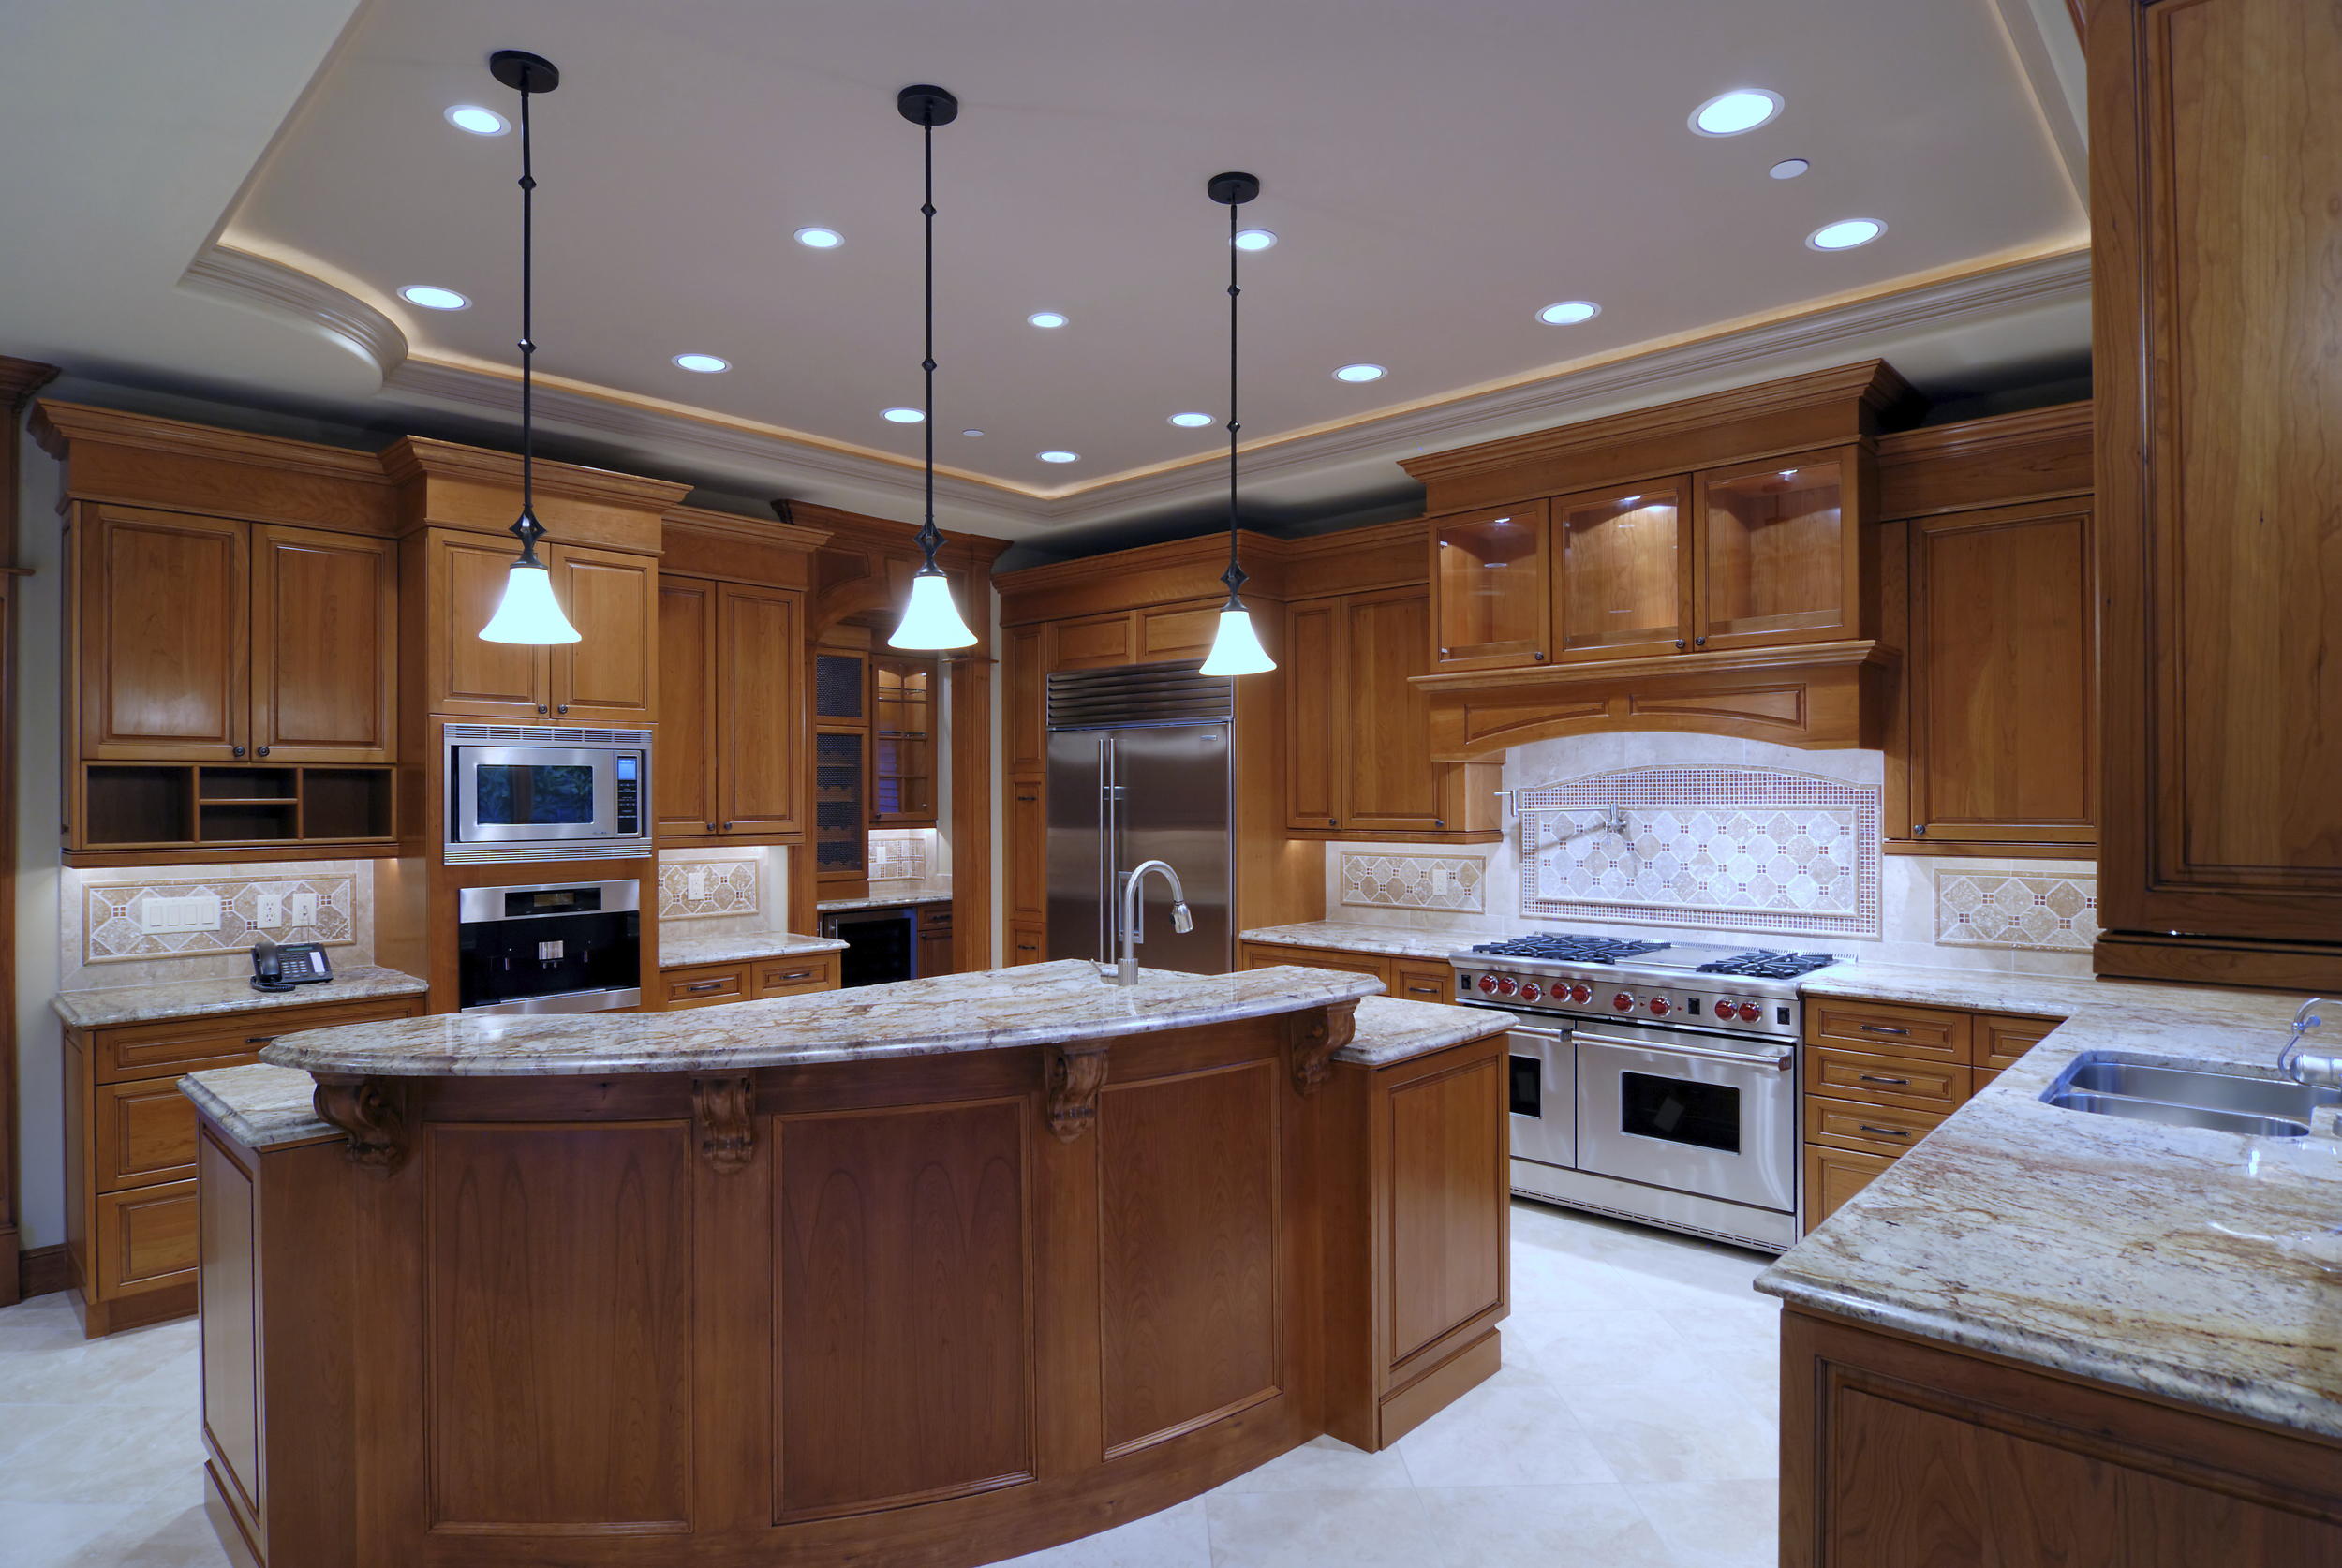 kitchen contractor small appliances renovations vancouver home general istock 000004813452 large jpg